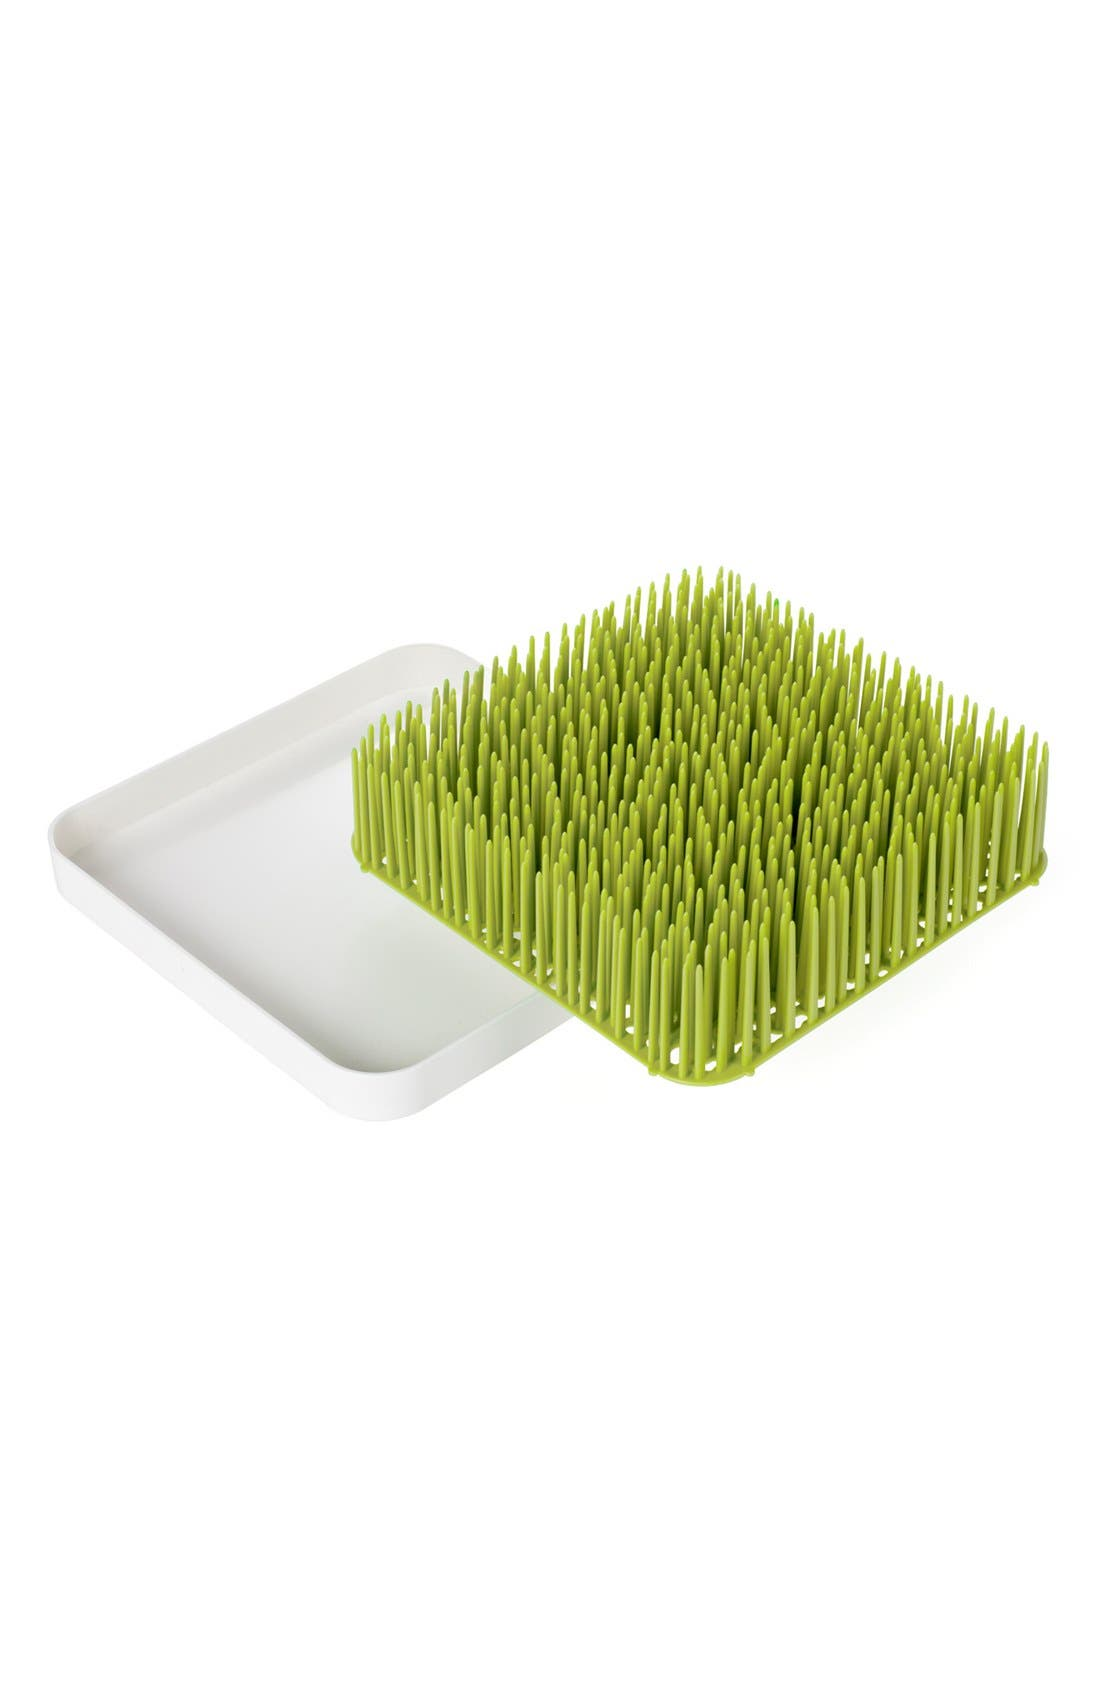 'Grass' Drying Rack,                         Main,                         color, Green And White